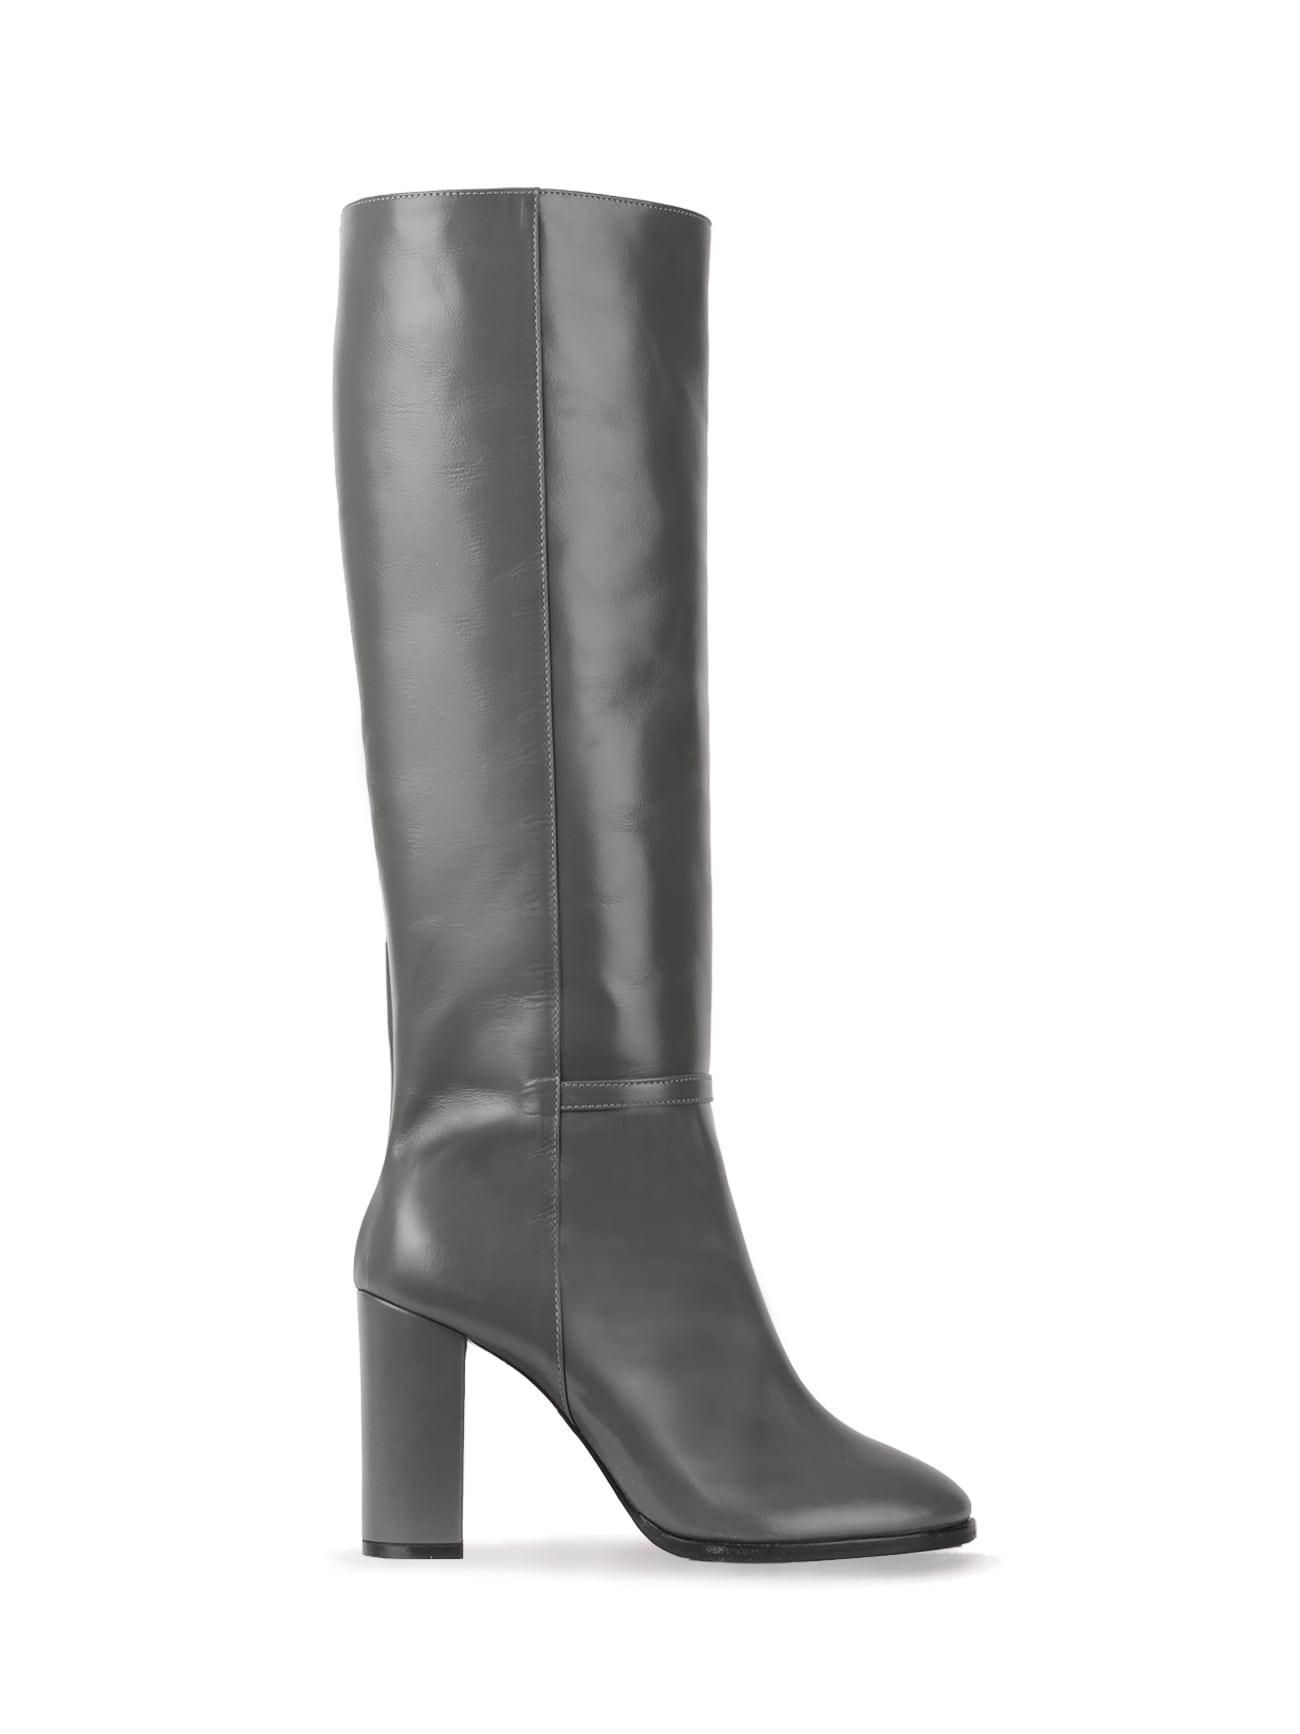 KATE LEATHER KNEE BOOTS (7cm, 9cm) - DARK GRAY